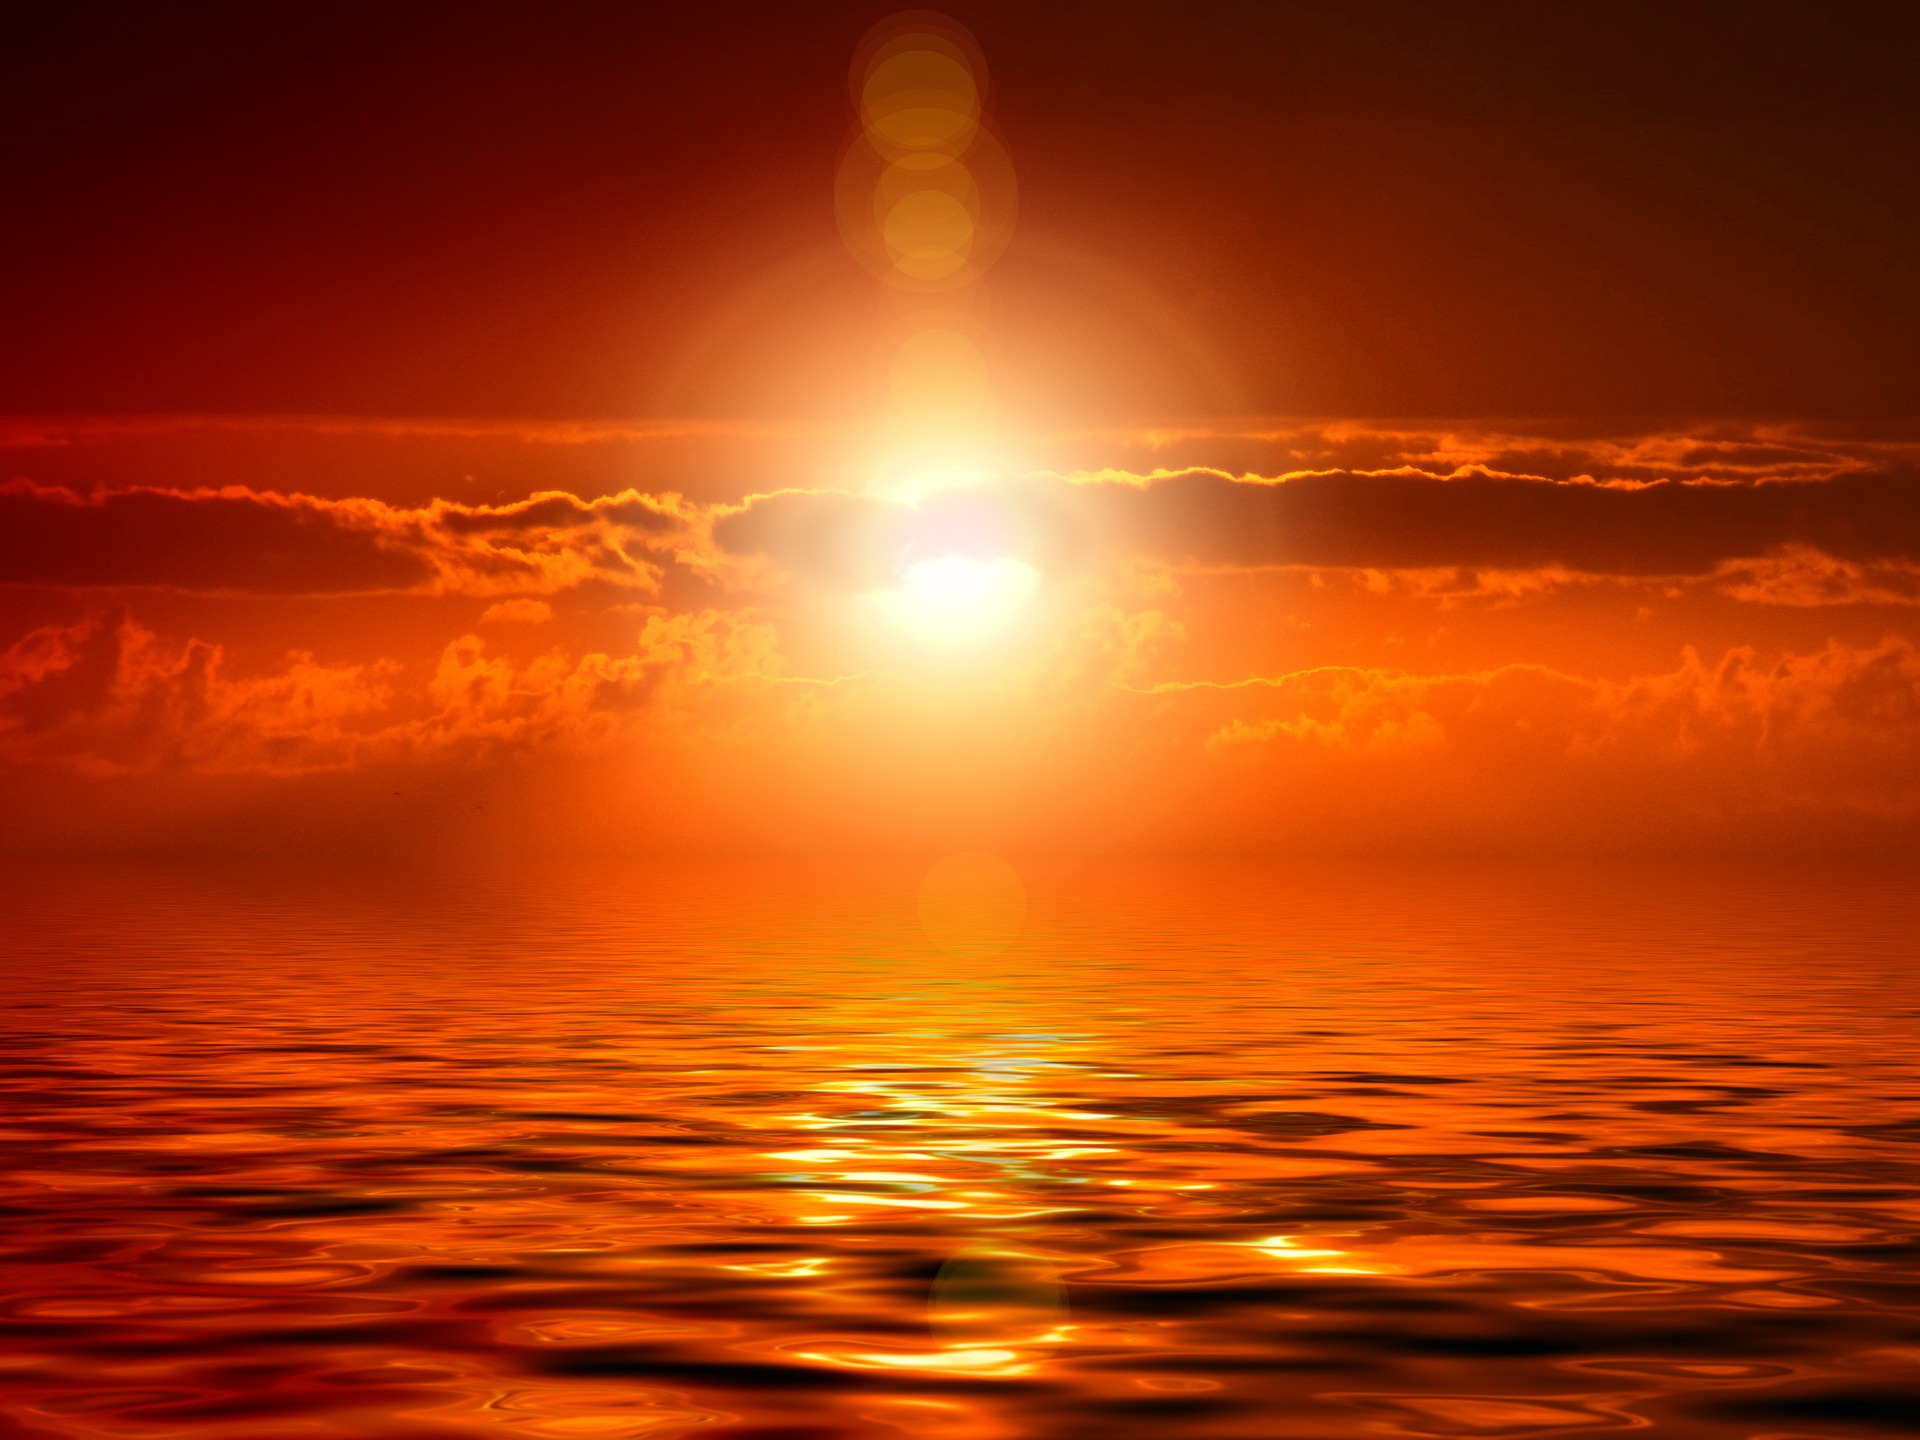 Image of sun setting over horizon